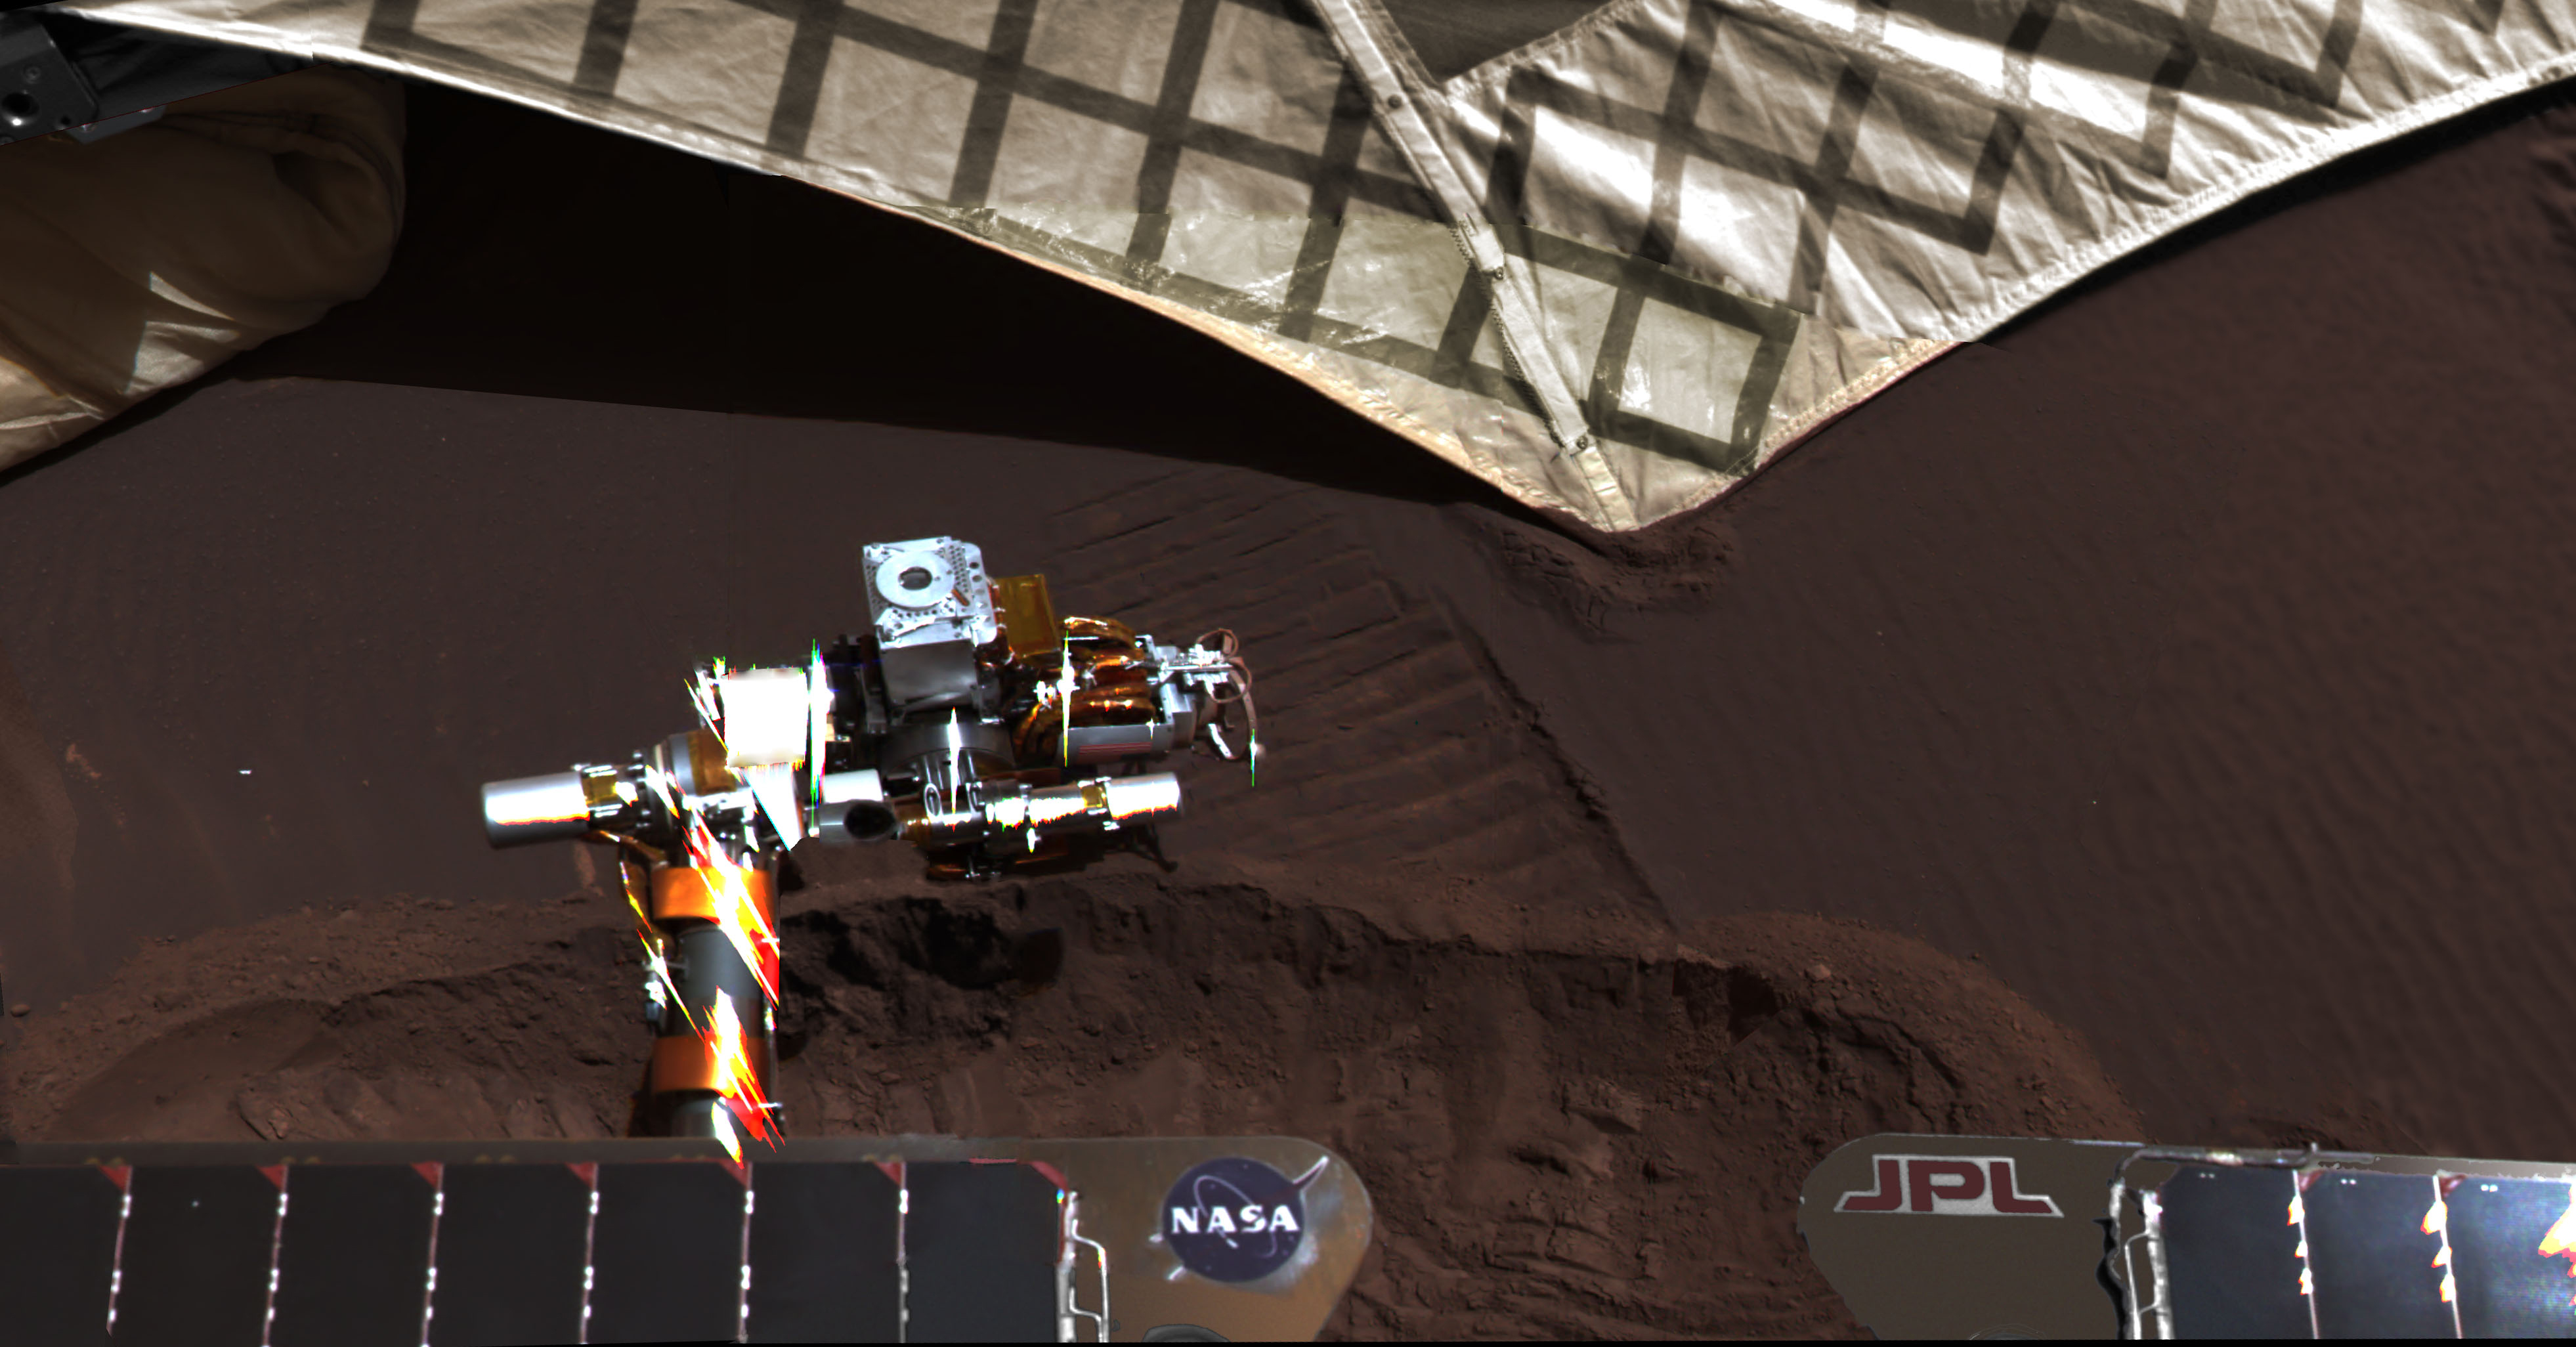 Mars Exploration Rover Mission Panoramas Opportunity